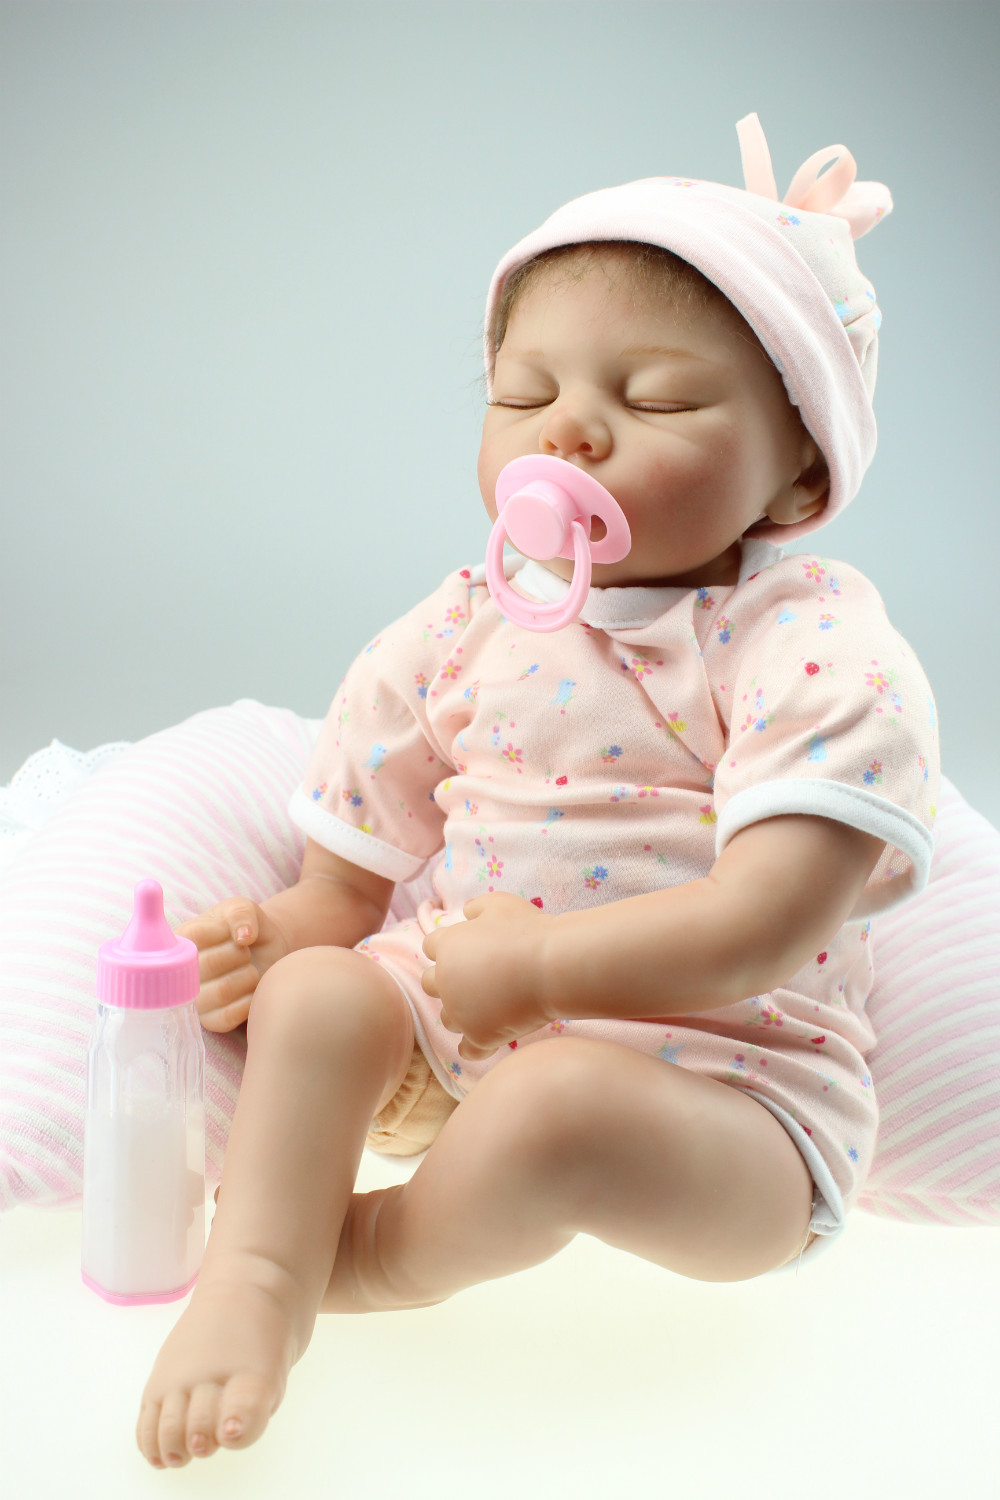 Silicone Vinyl Doll Baby toys Newborn Simulation Babydoll Girls Present to be learing tools for mothers newborn simulation babydoll silicone vinyl doll educational enlightenment baby toys girls present